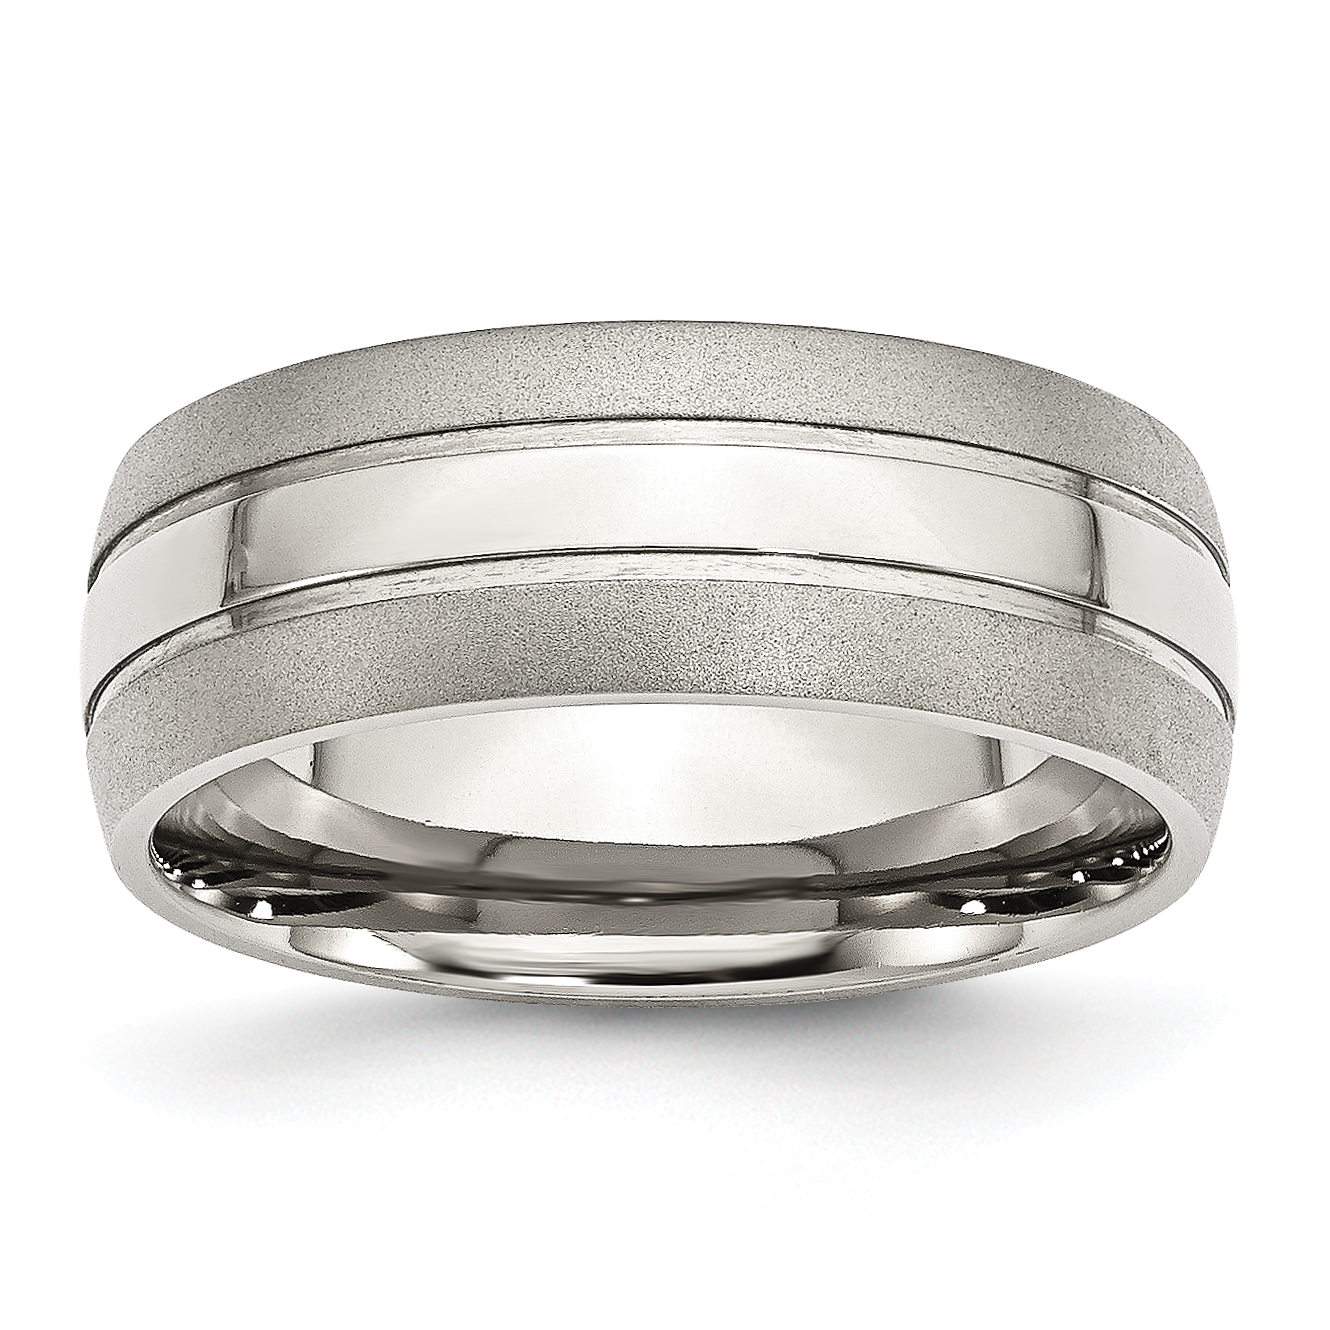 Stainless Steel Grooved 8mm Brushed and Polished Band Size 13.5 - image 3 of 3